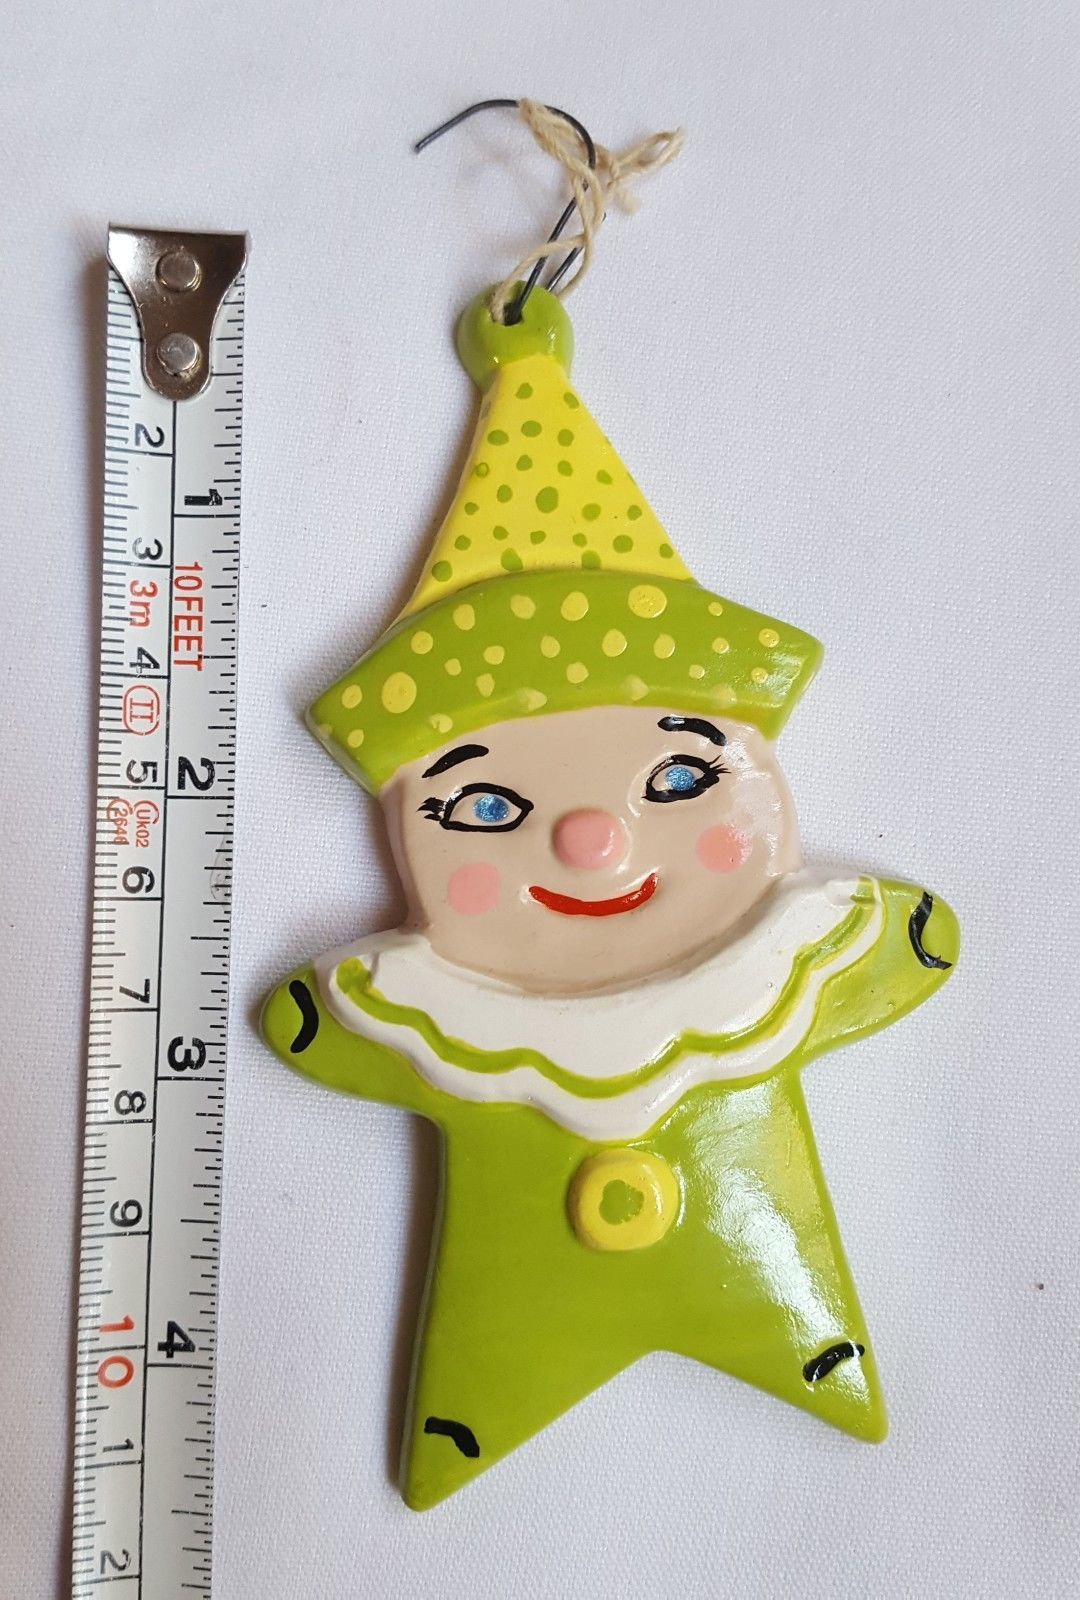 Primary image for Ceramic Bisque Clown Ornament Christmas Xmas tree holiday season decoration